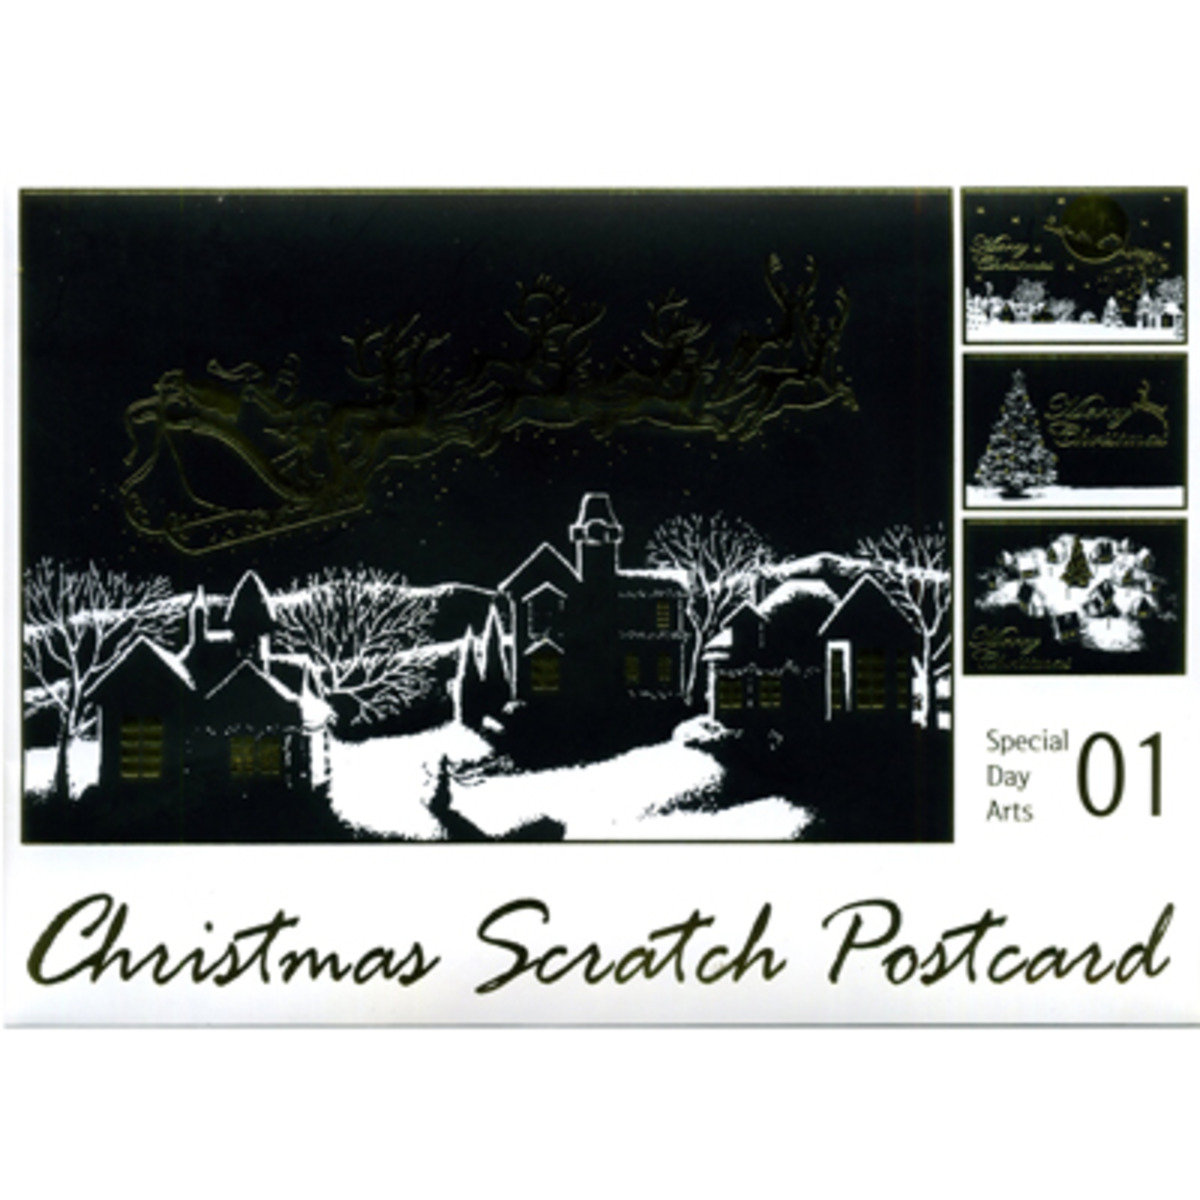 CHRISTMAS SCRATCH POSTCARD #1 8809379160771